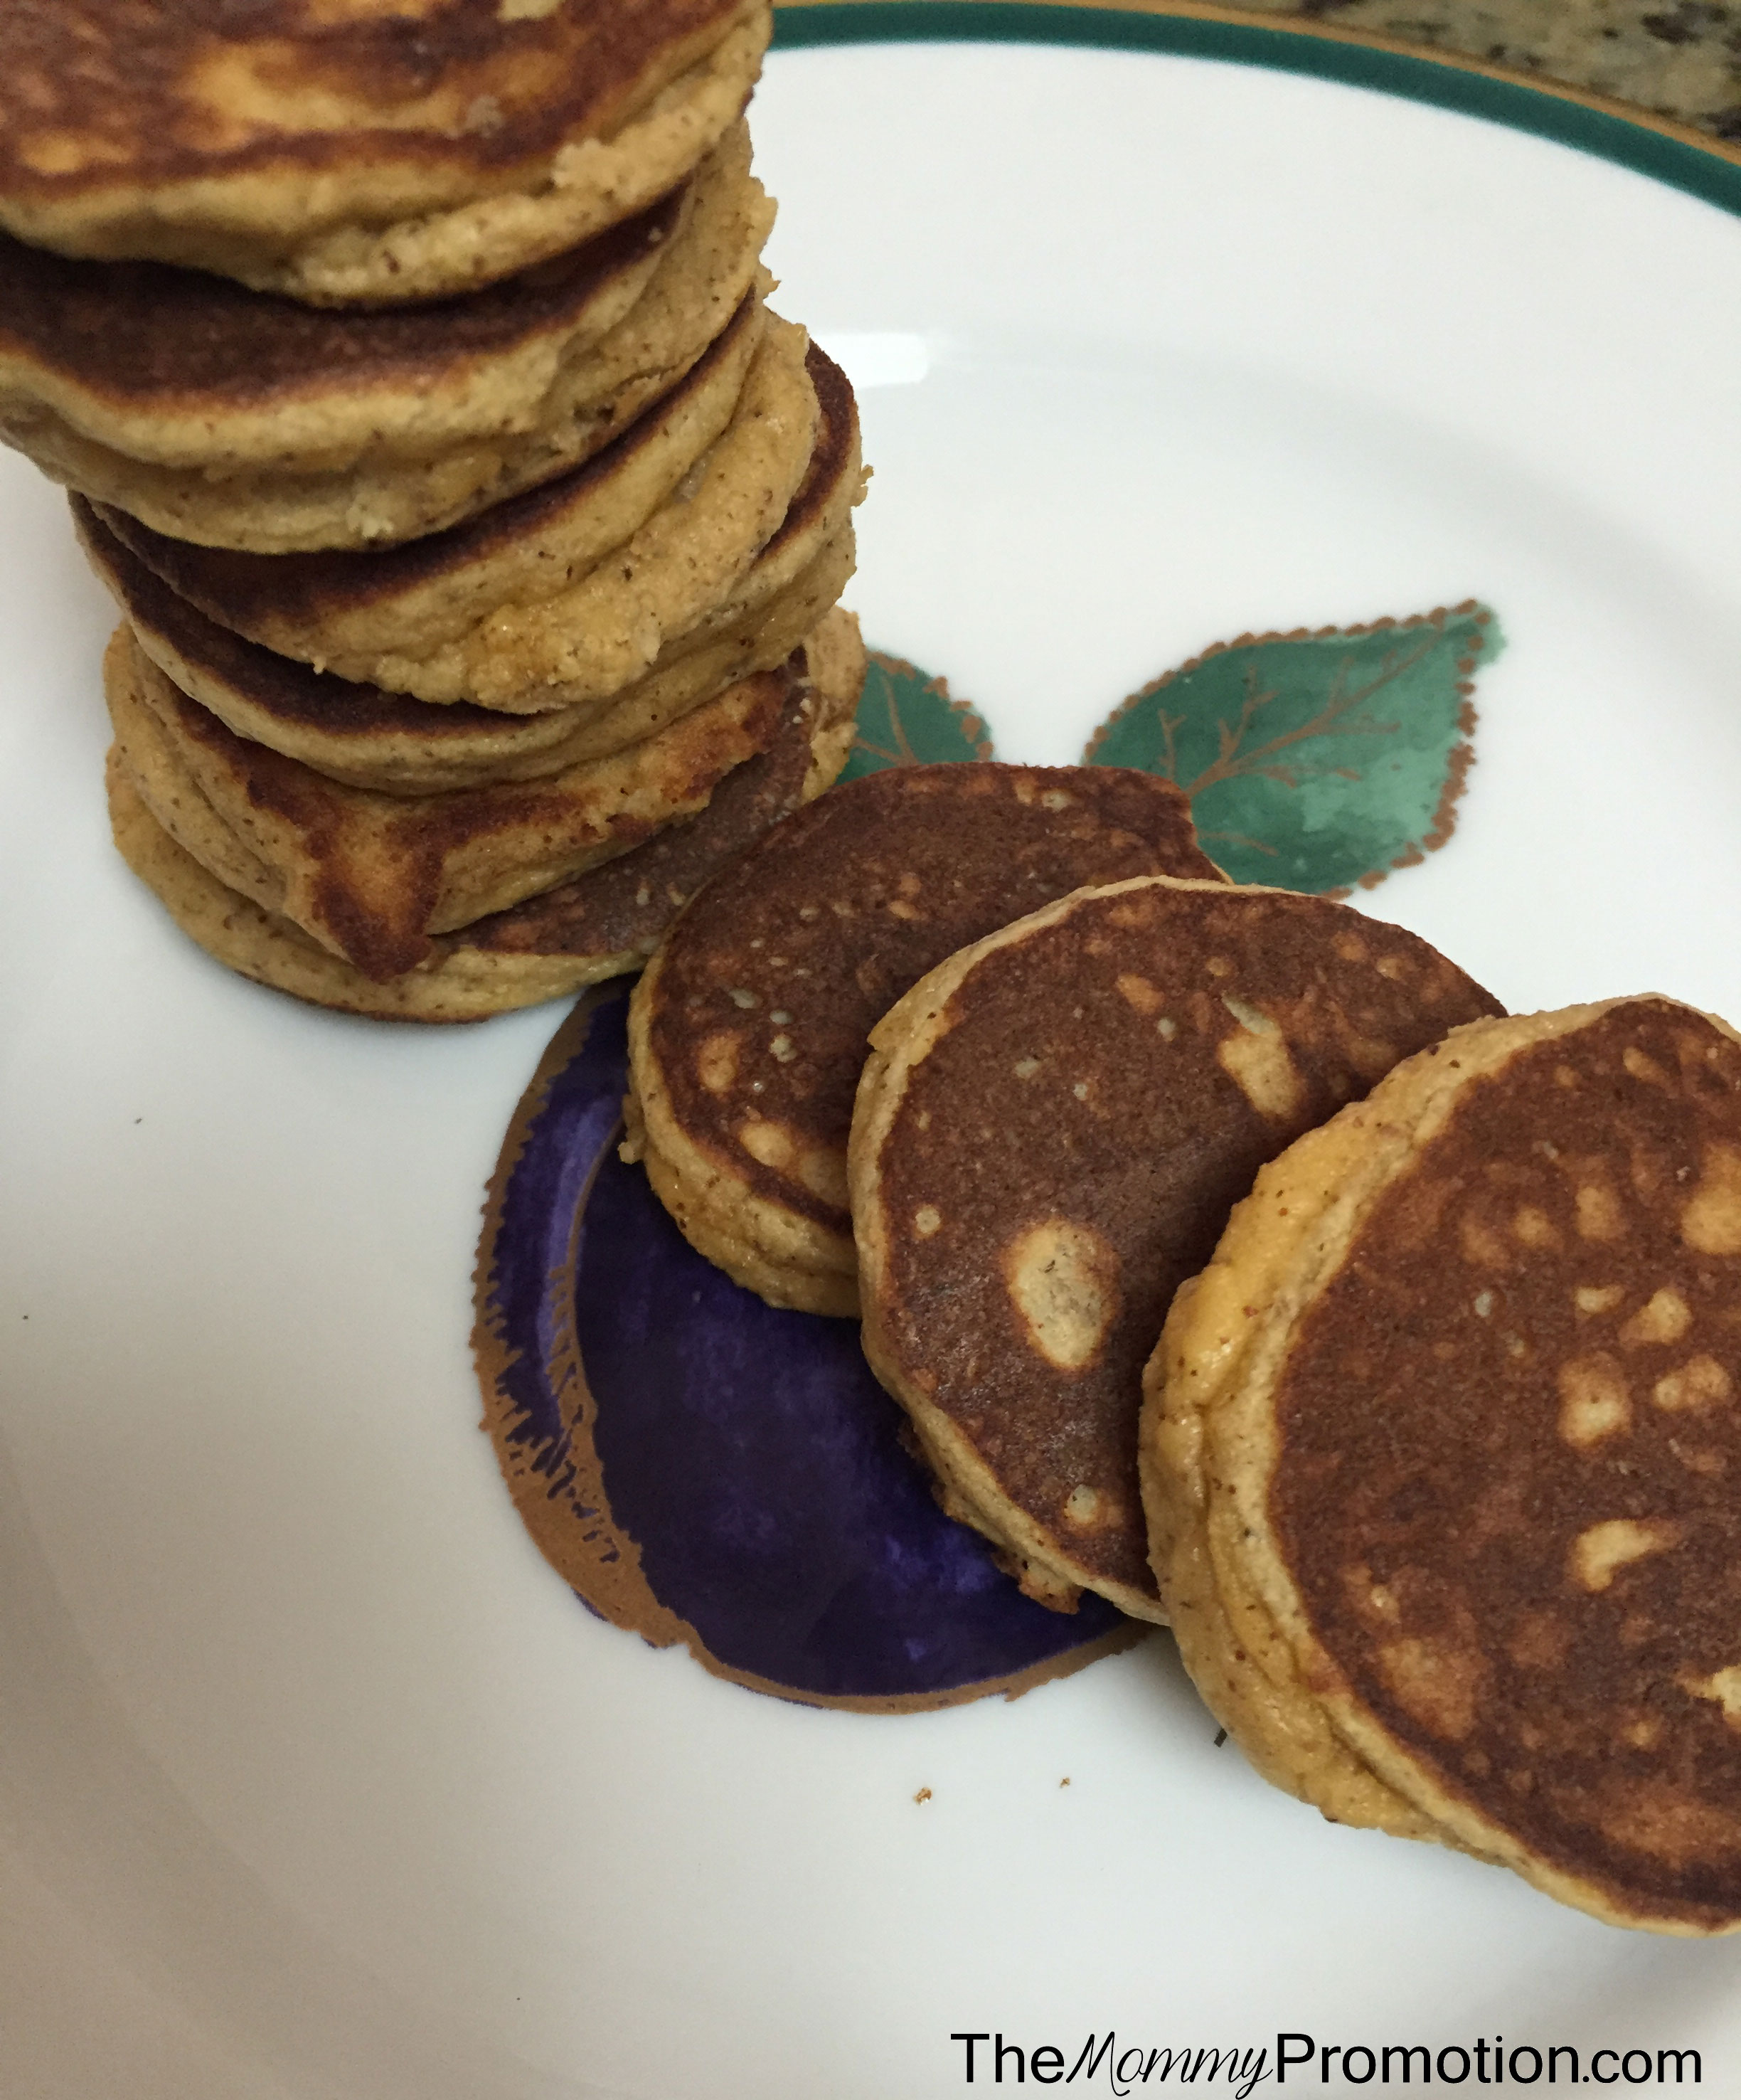 Coconut-Flour-Almond-Butter-Paleo-Organic-Baby-Pancakes_Recipes_Baby-and-Kids-_-The-Mommy-Promotion